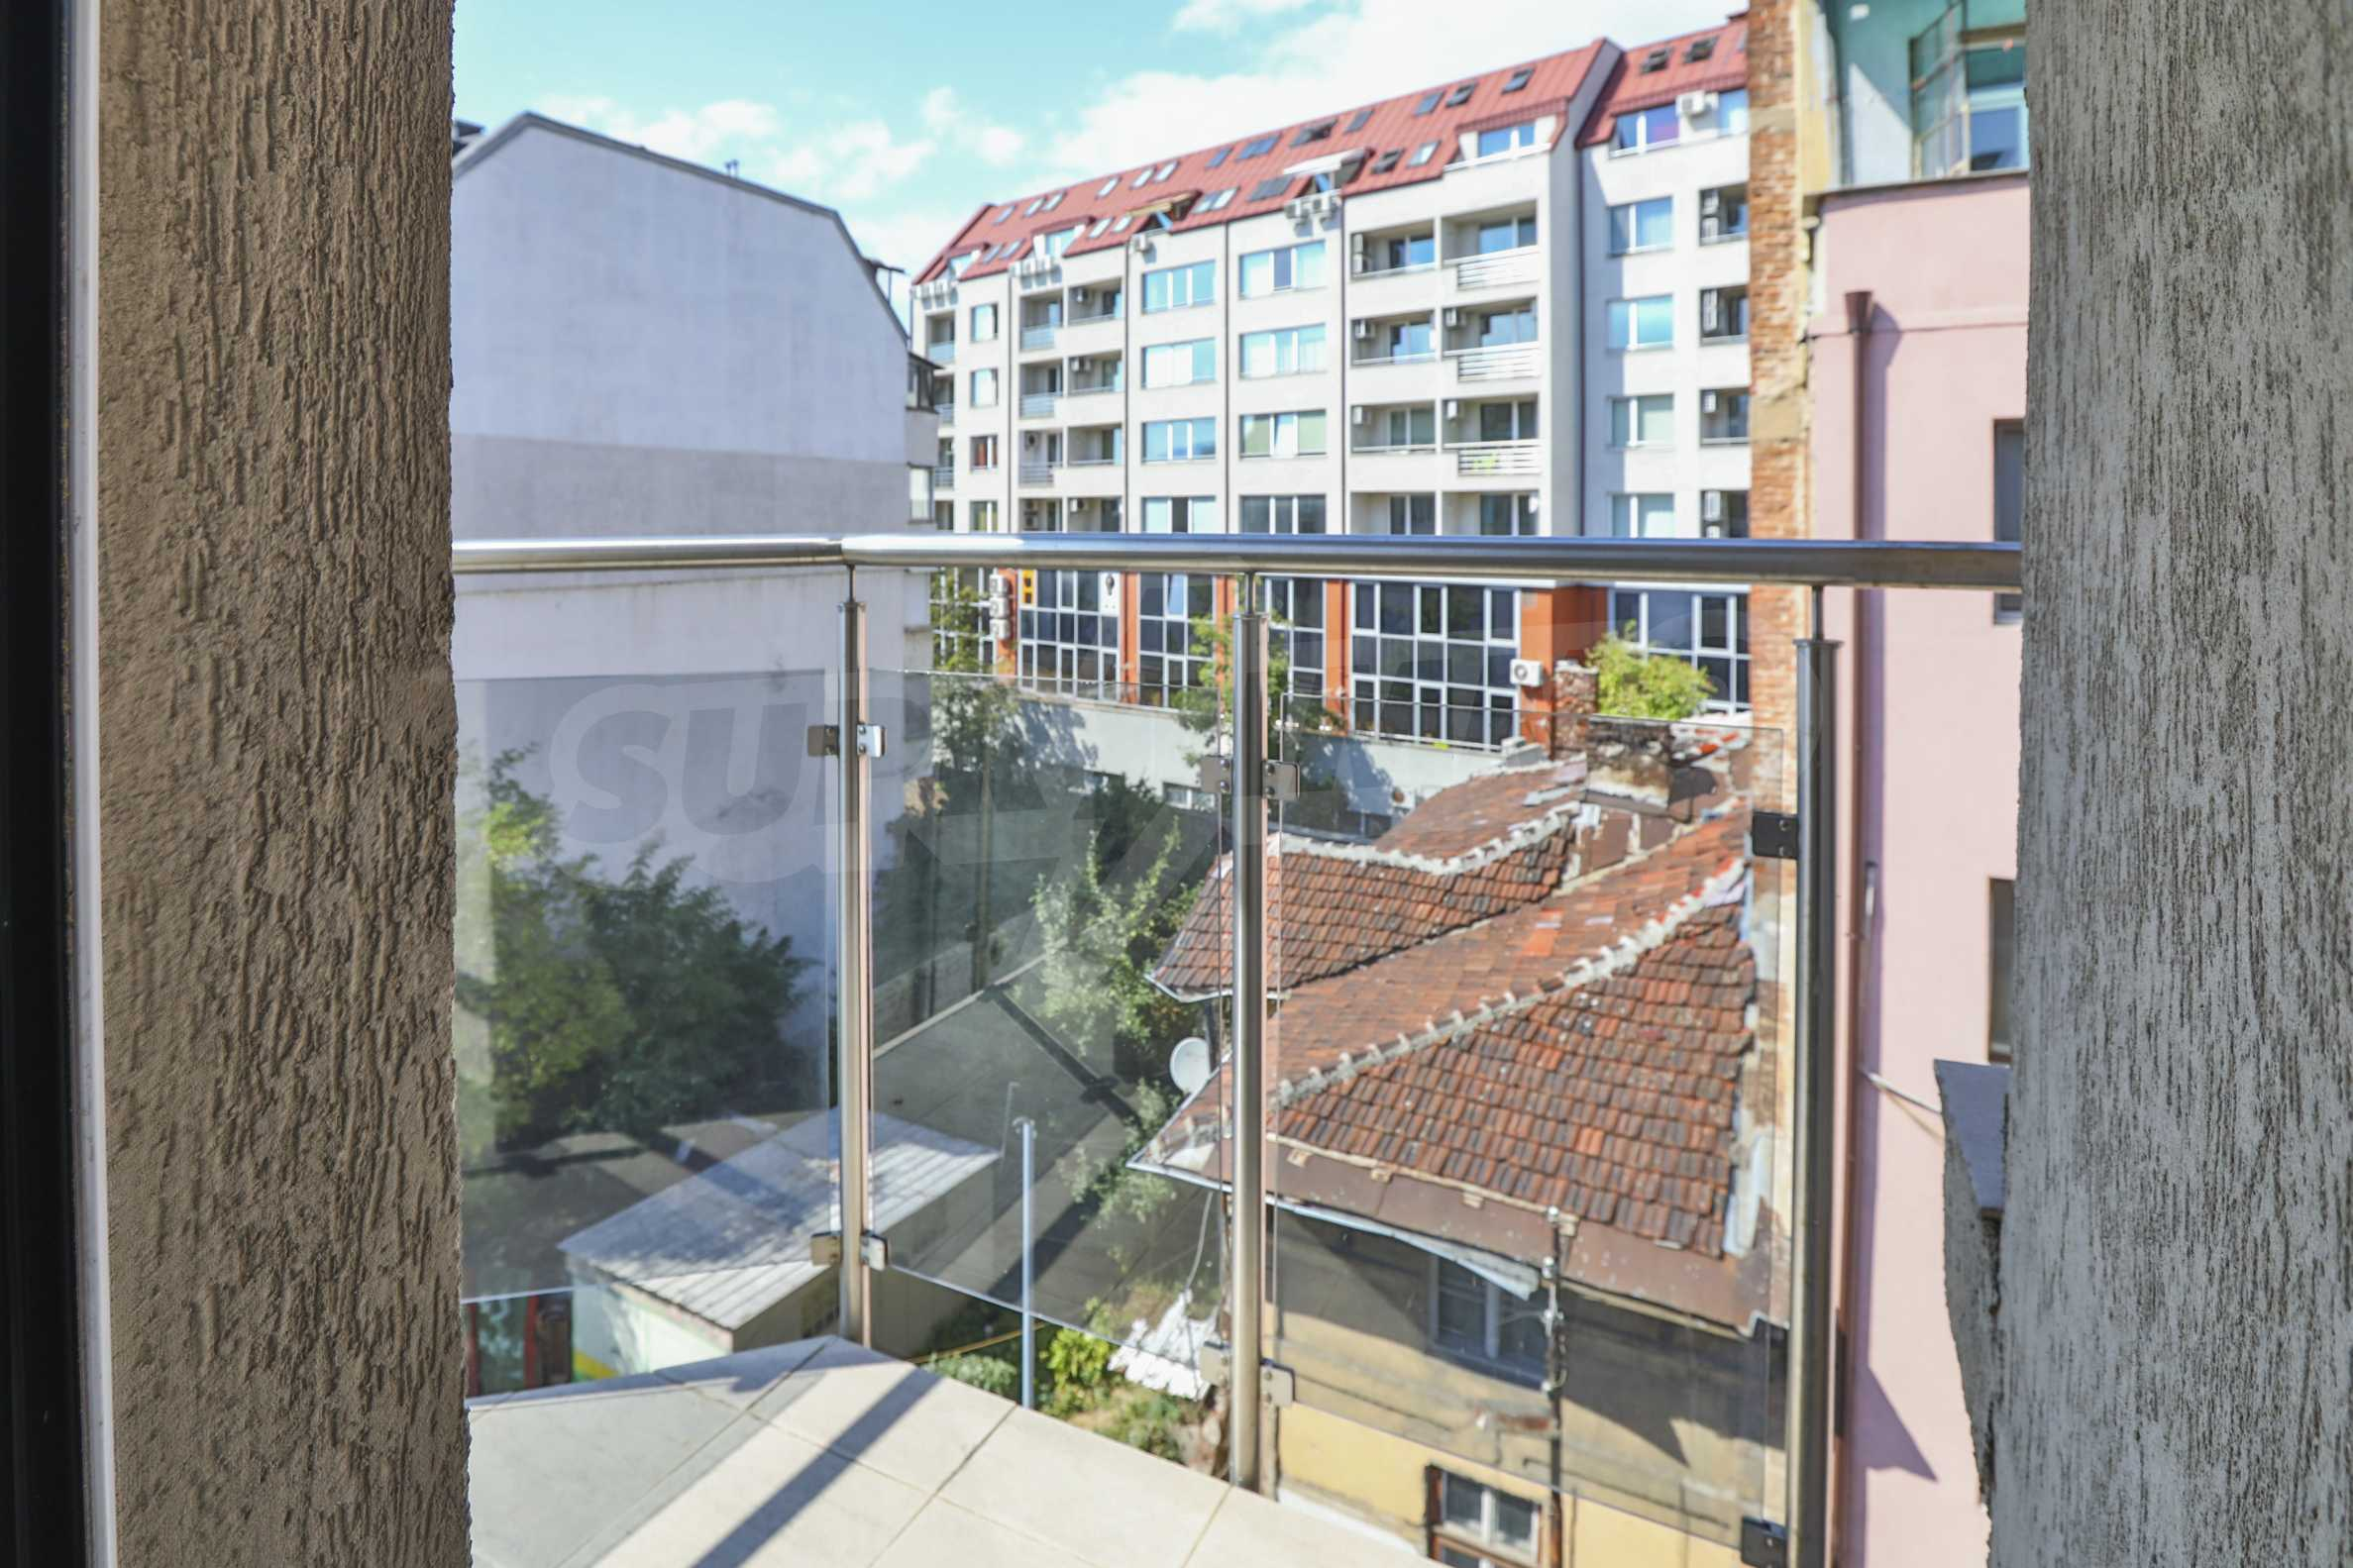 Two-bedroom apartment in the center with high rating on Airbnb 7